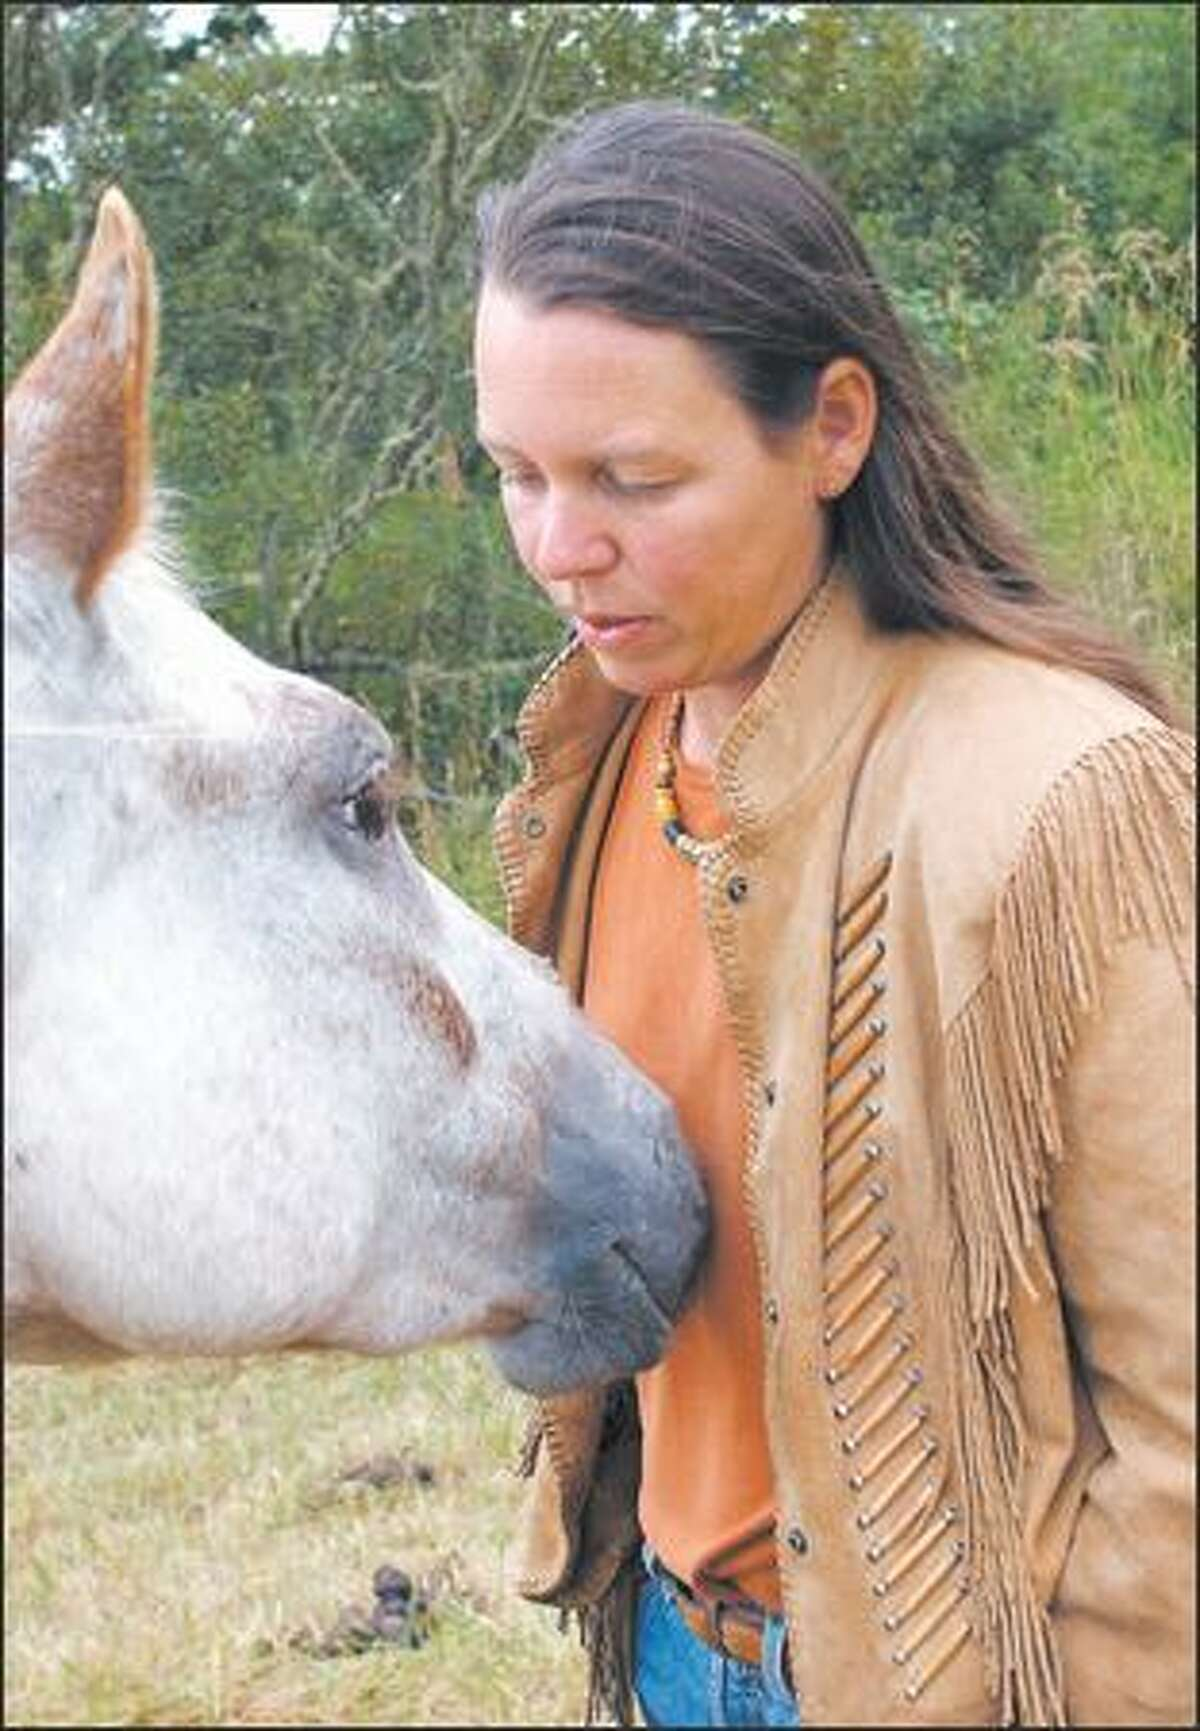 First-time novelist Karen Fisher greets one of her nine horses at her 10-acre family home on Lopez Island.